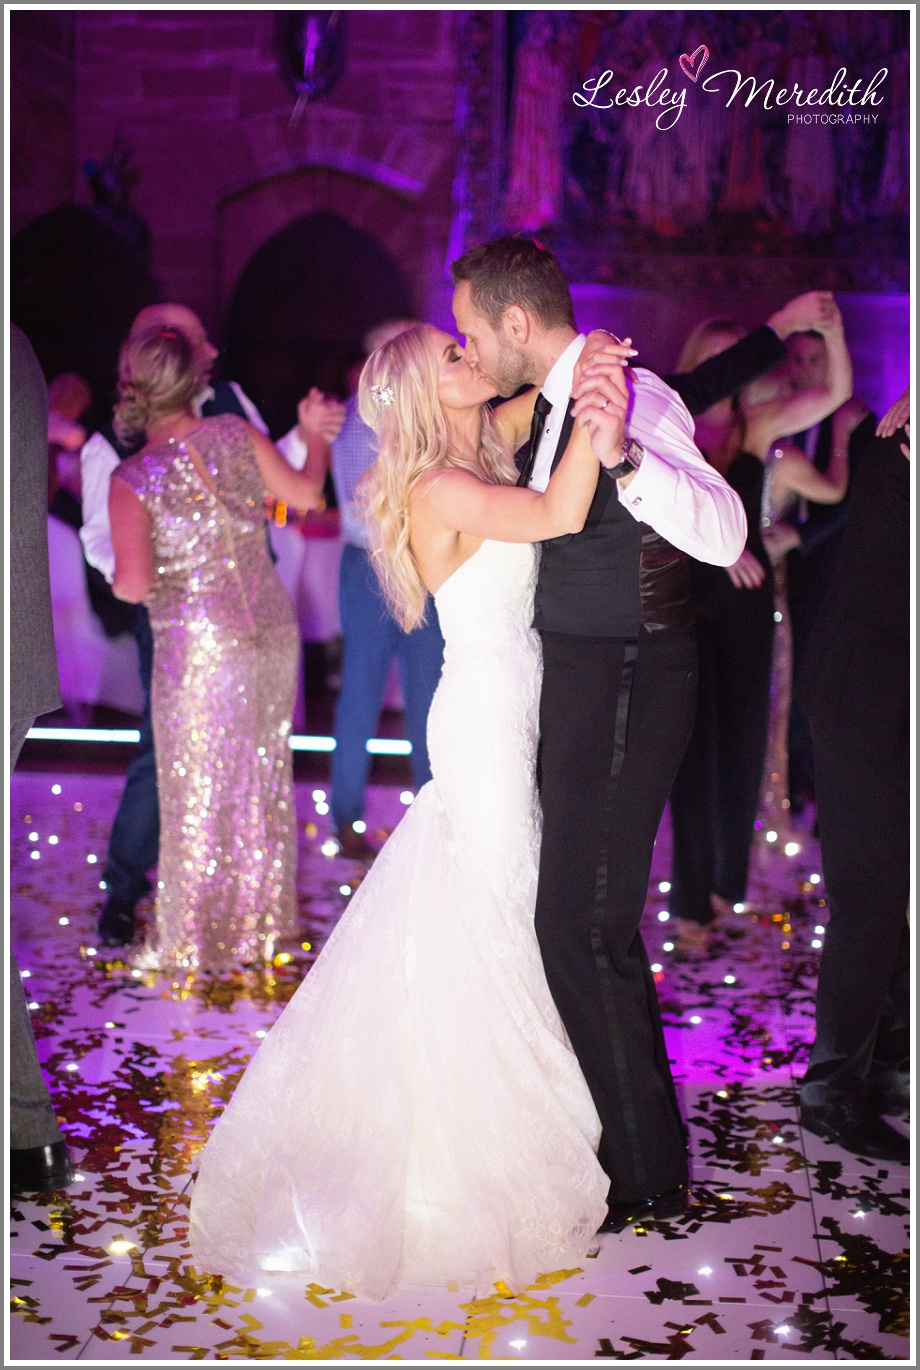 Kisses on the dancefloor at Peckforton Castle